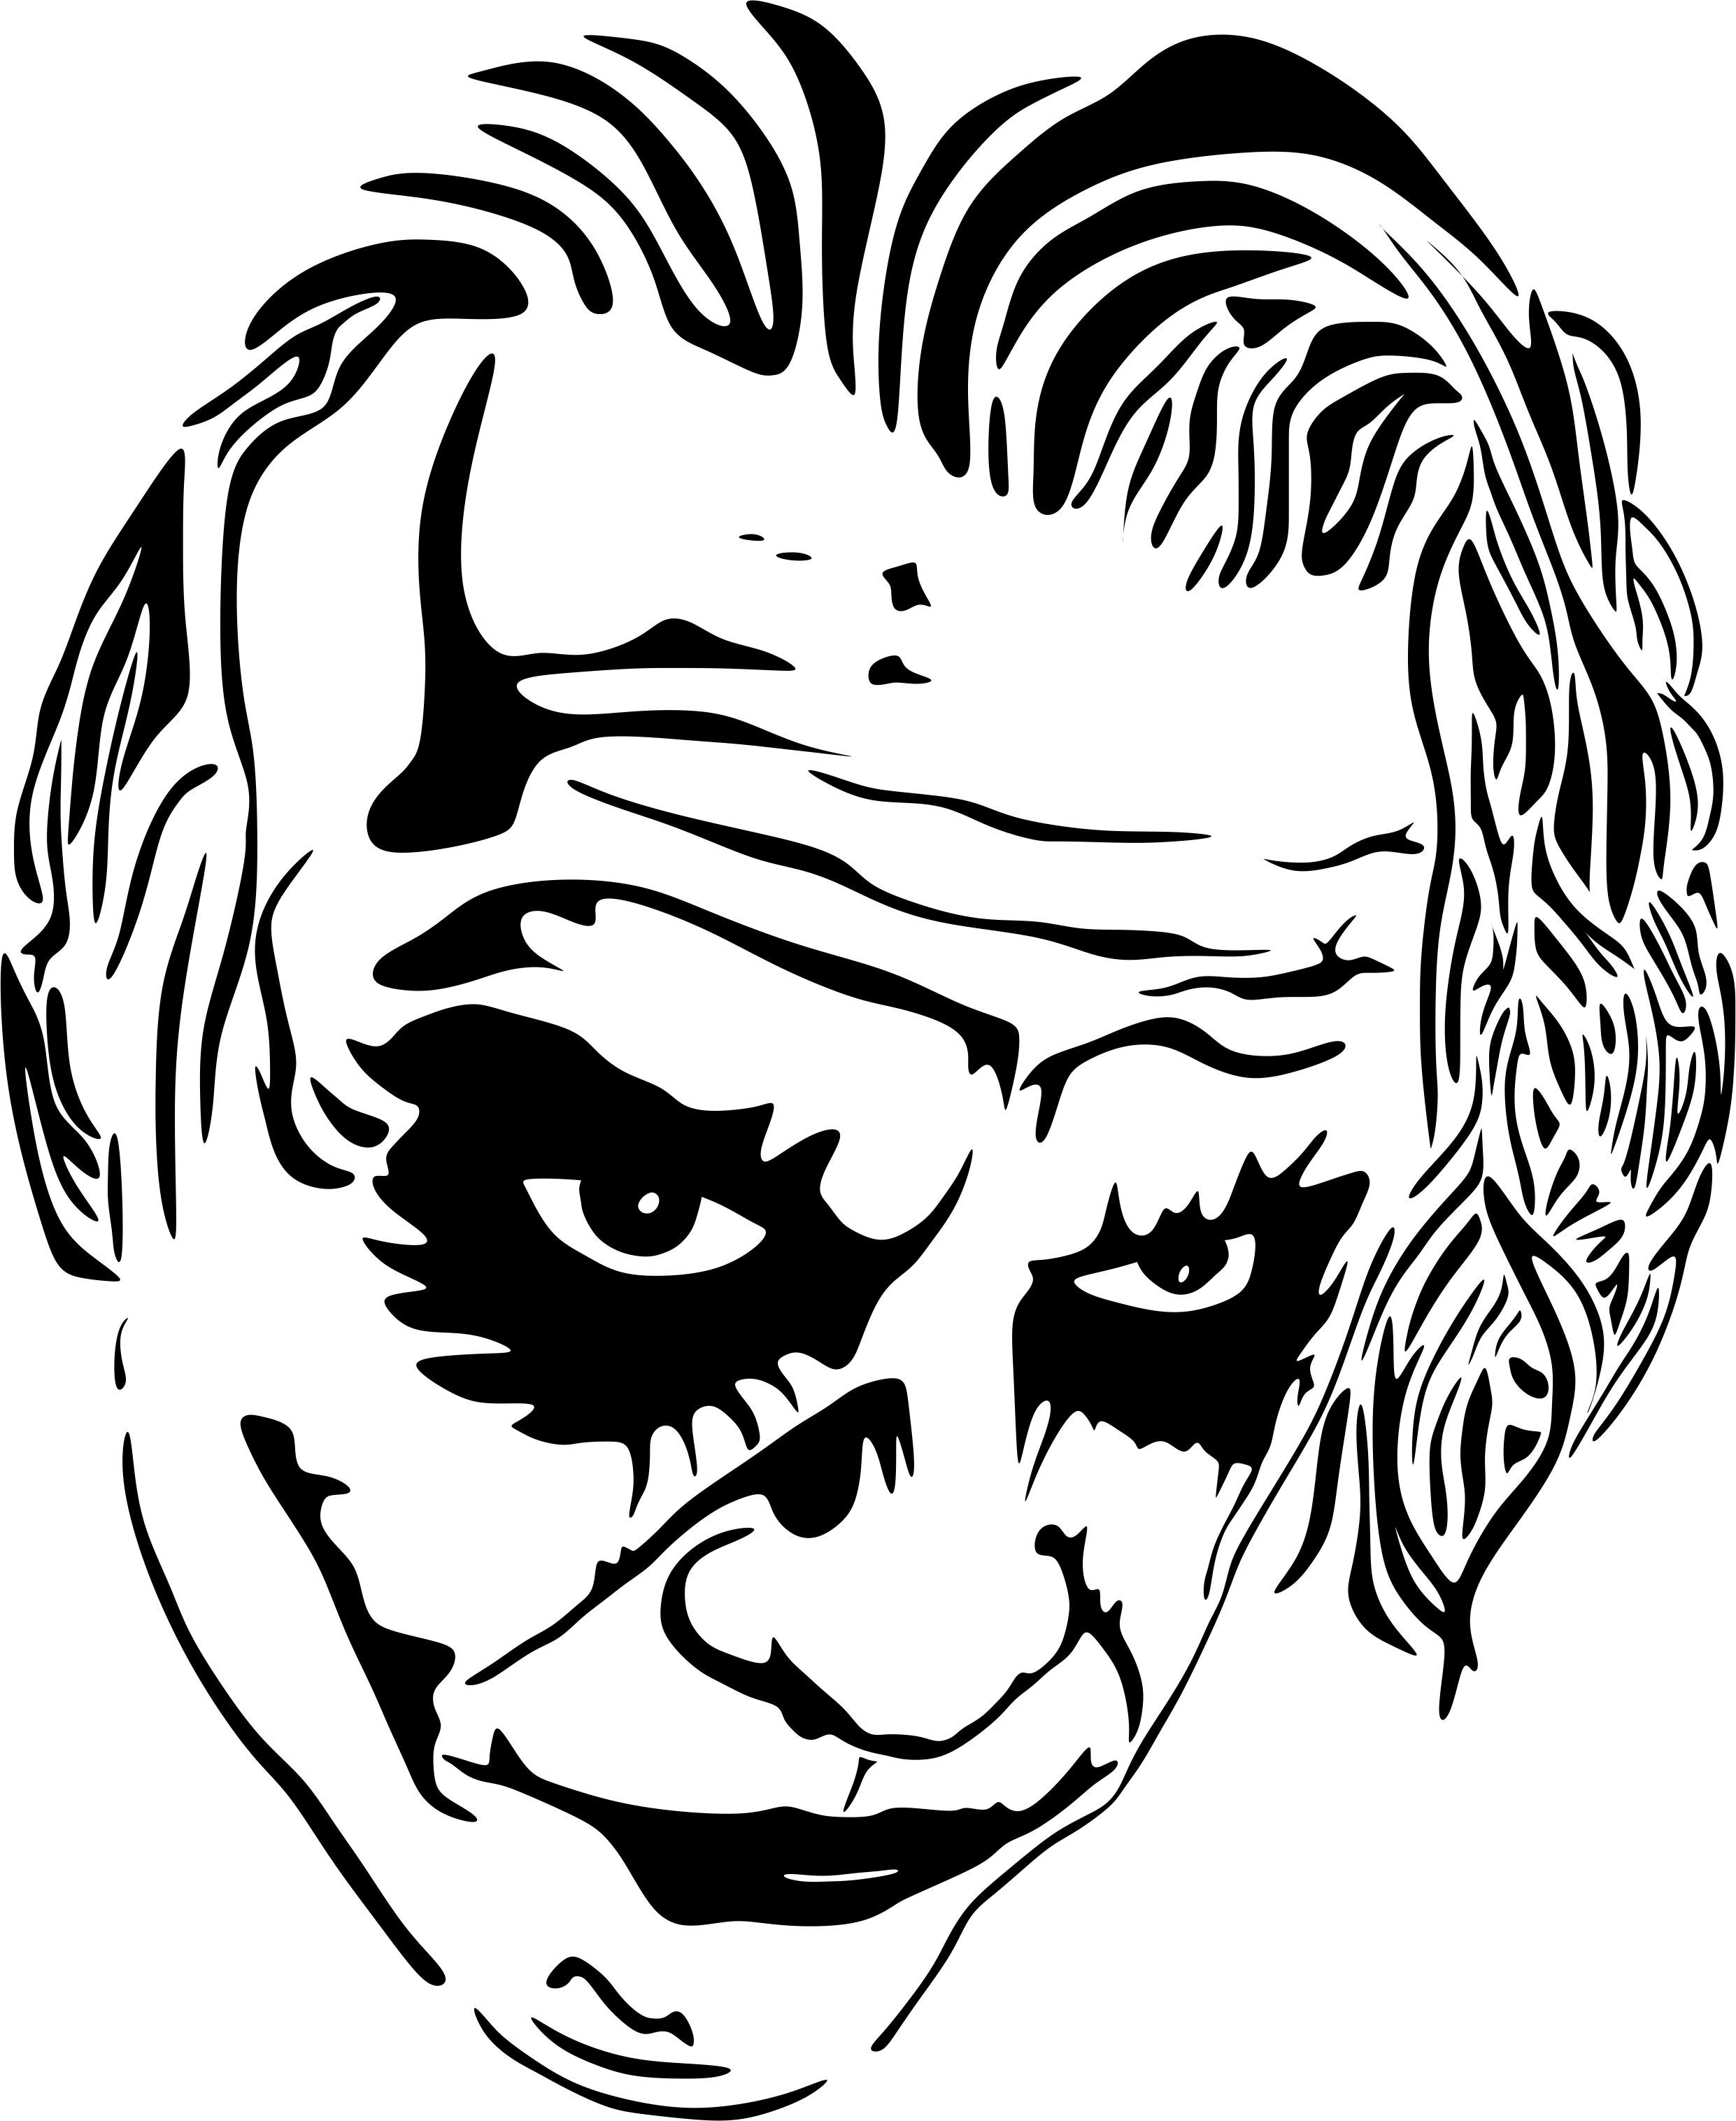 120260252523302328 besides 24 Horror Tattoos Flash Ideas furthermore 7 also 40 Black And White Tattoo Designs together with Circus Clowns Coloring Page 34. on scary funny clown cartoon